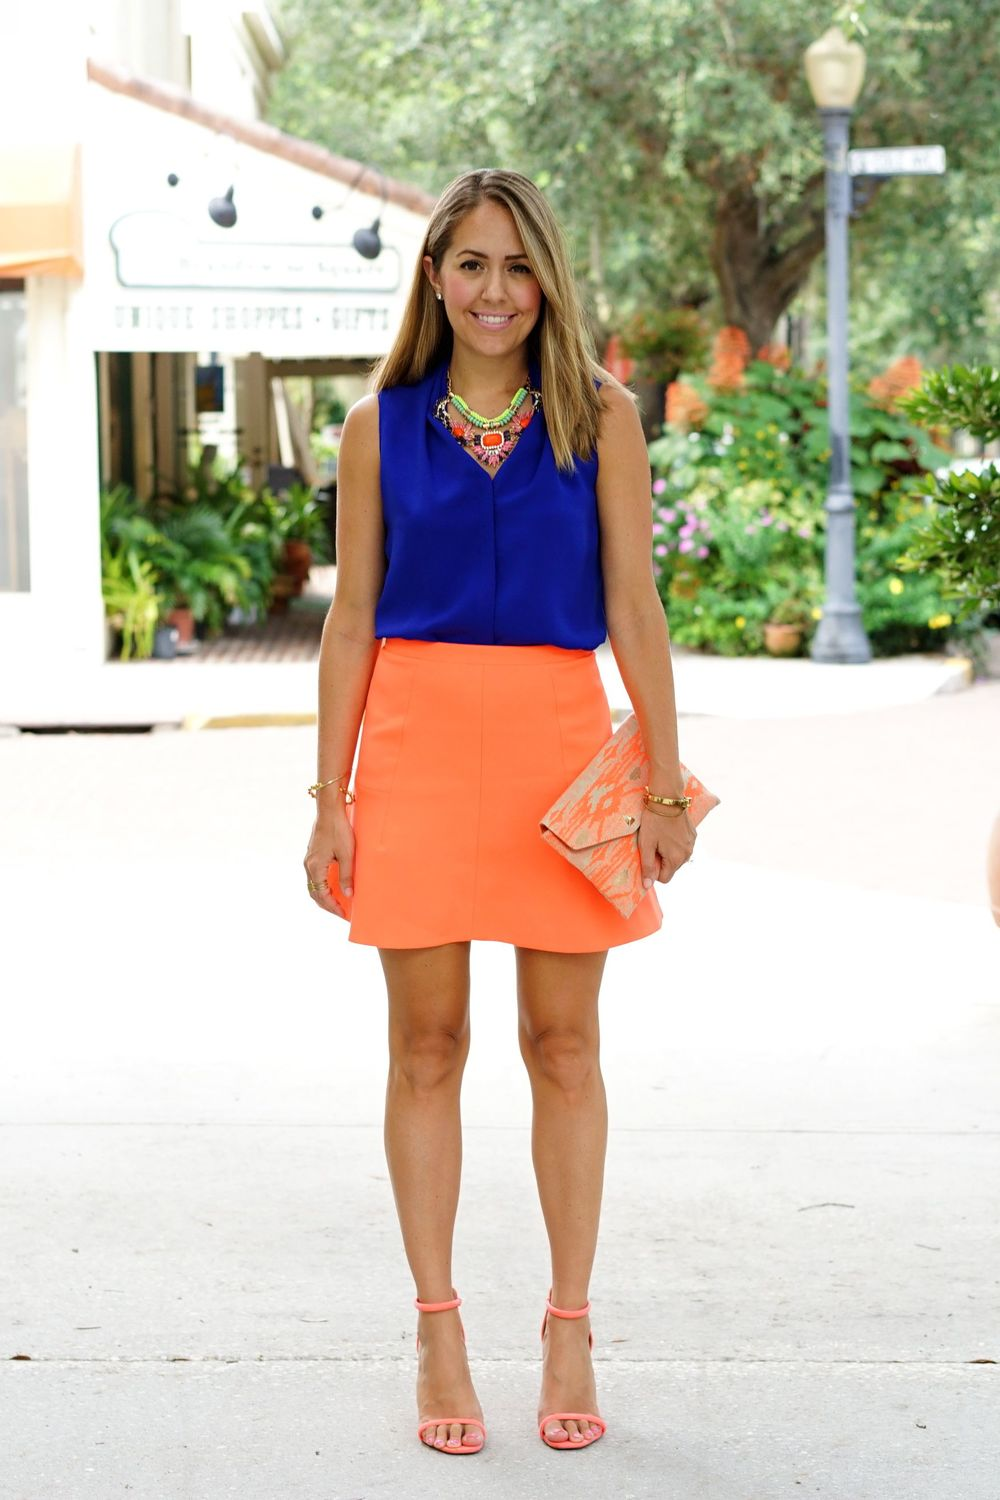 Cobalt top with orange skirt